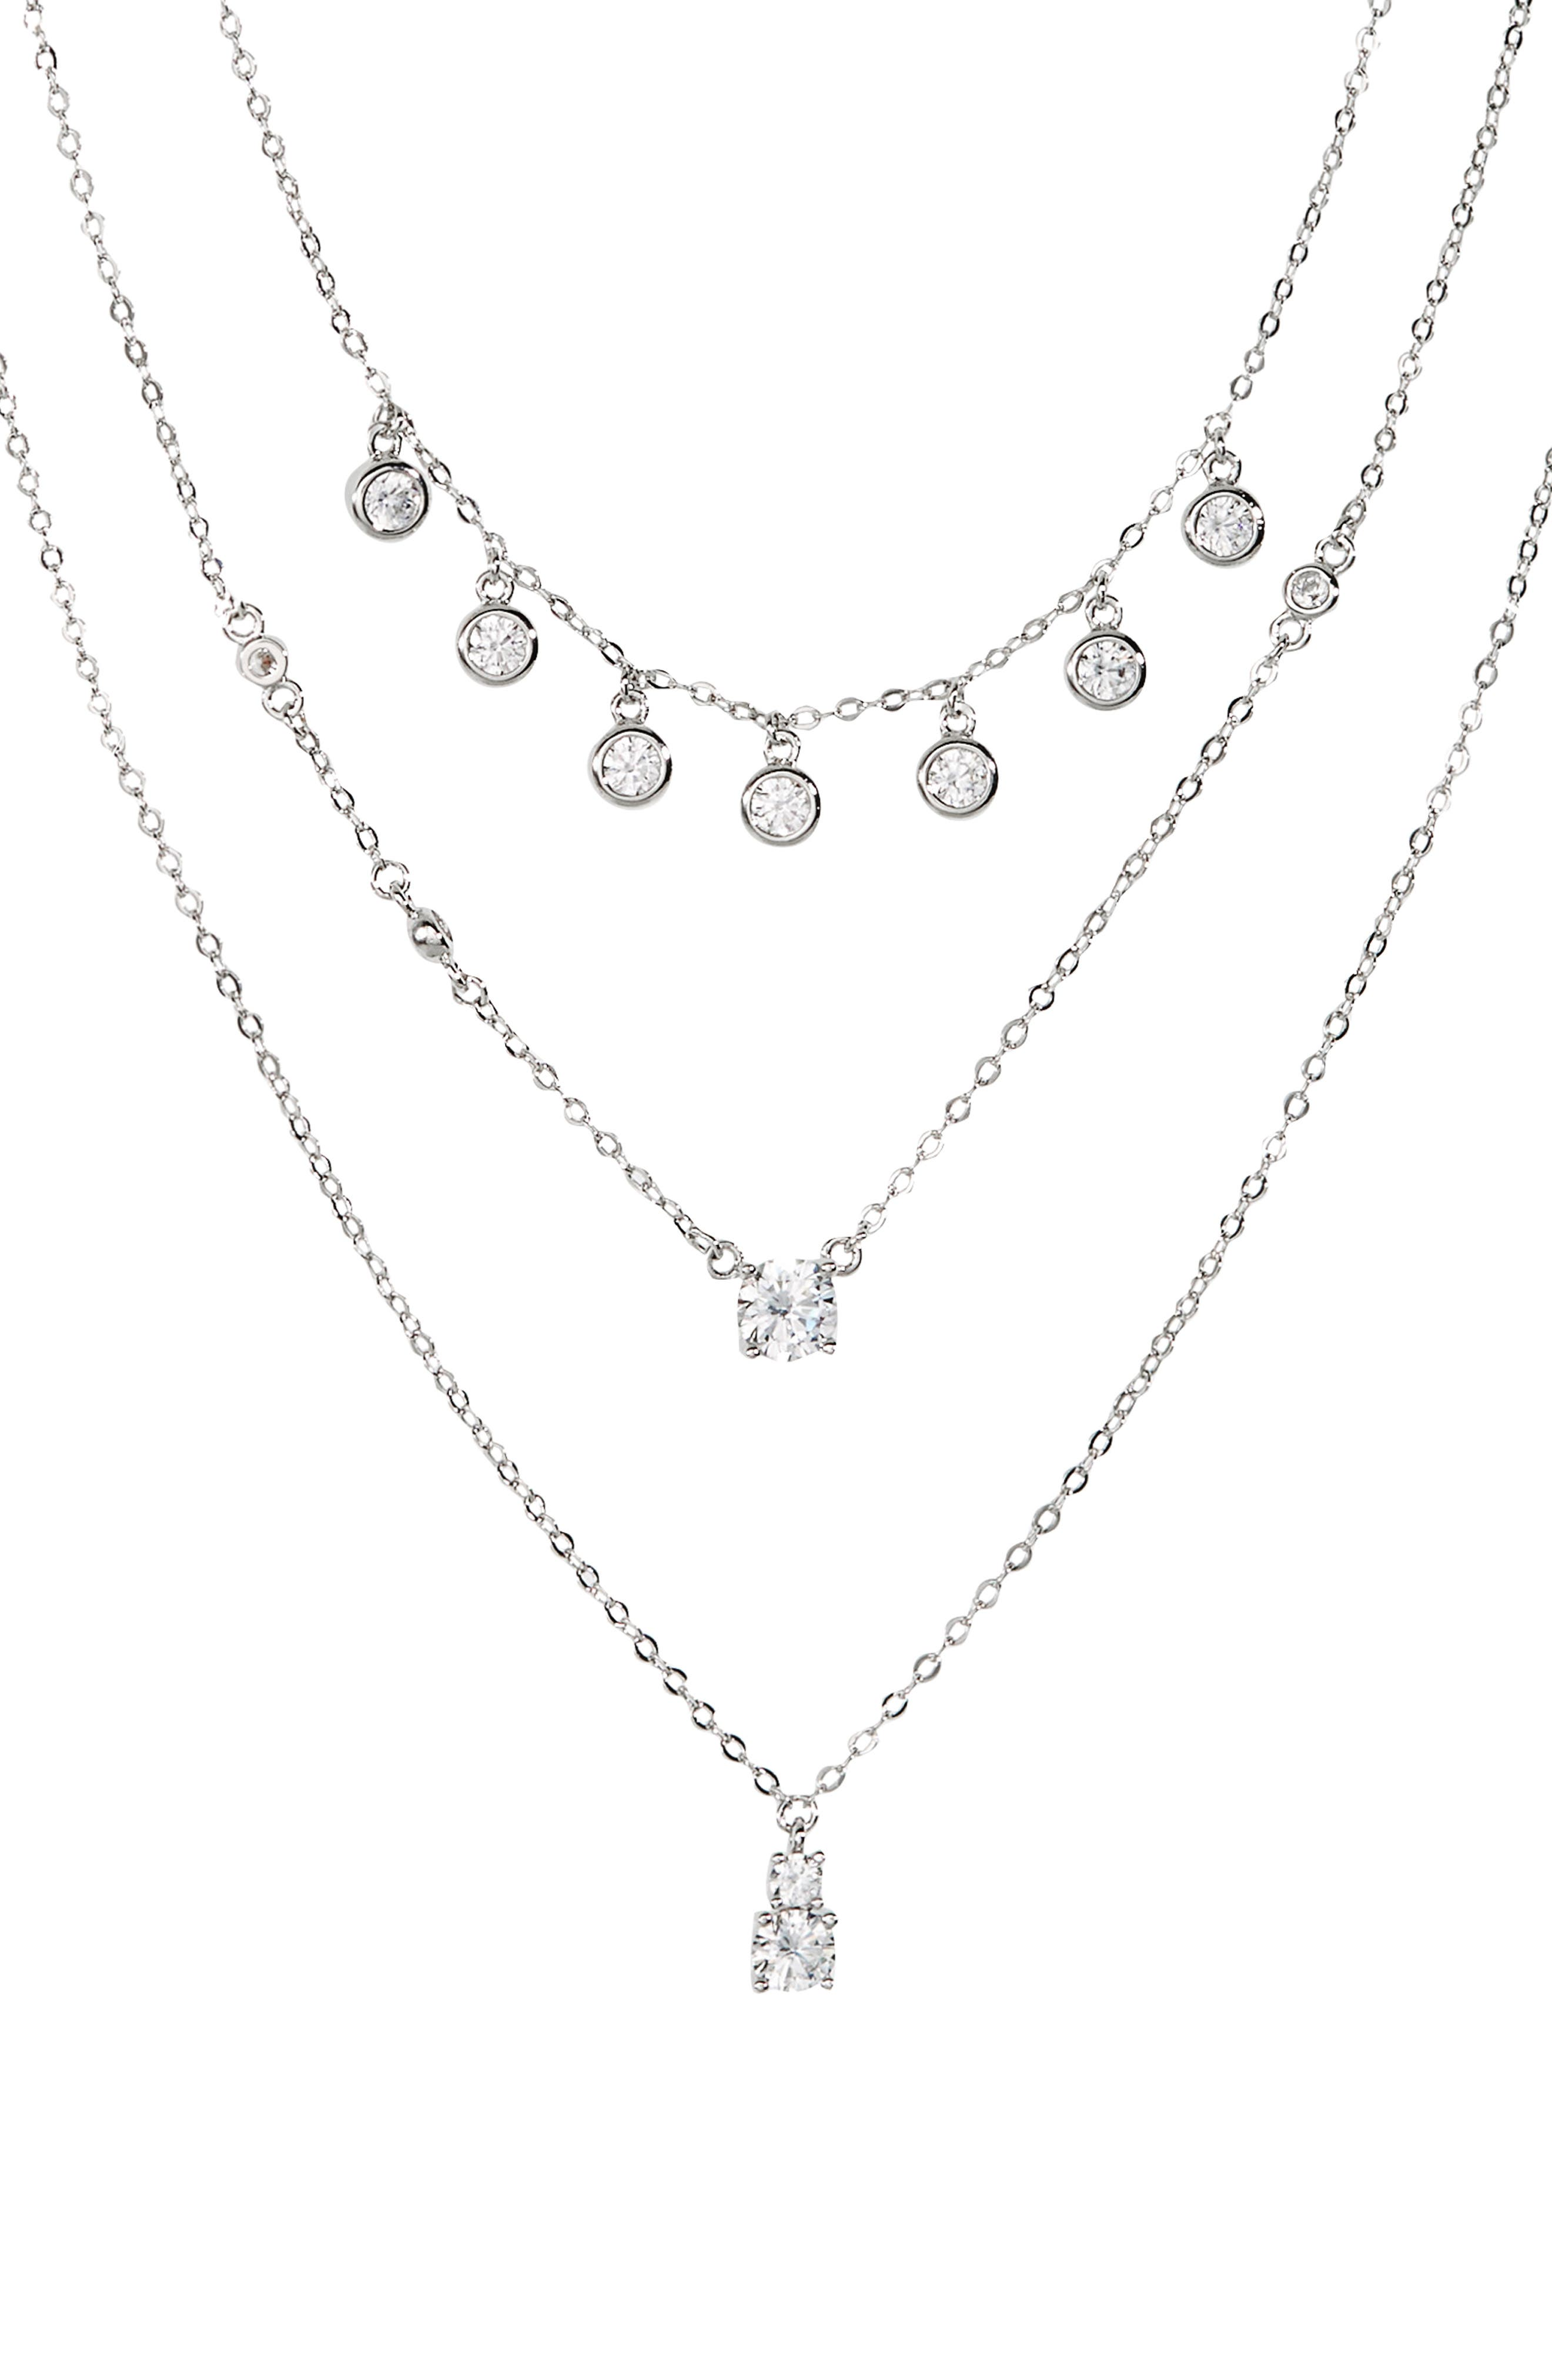 Fluttery crystal bezels add just the right amount of sparkle and shine to this delicate layered necklace. Style Name: Nordstrom Shaker Crystal Triple Strand Necklace. Style Number: 6016819. Available in stores.